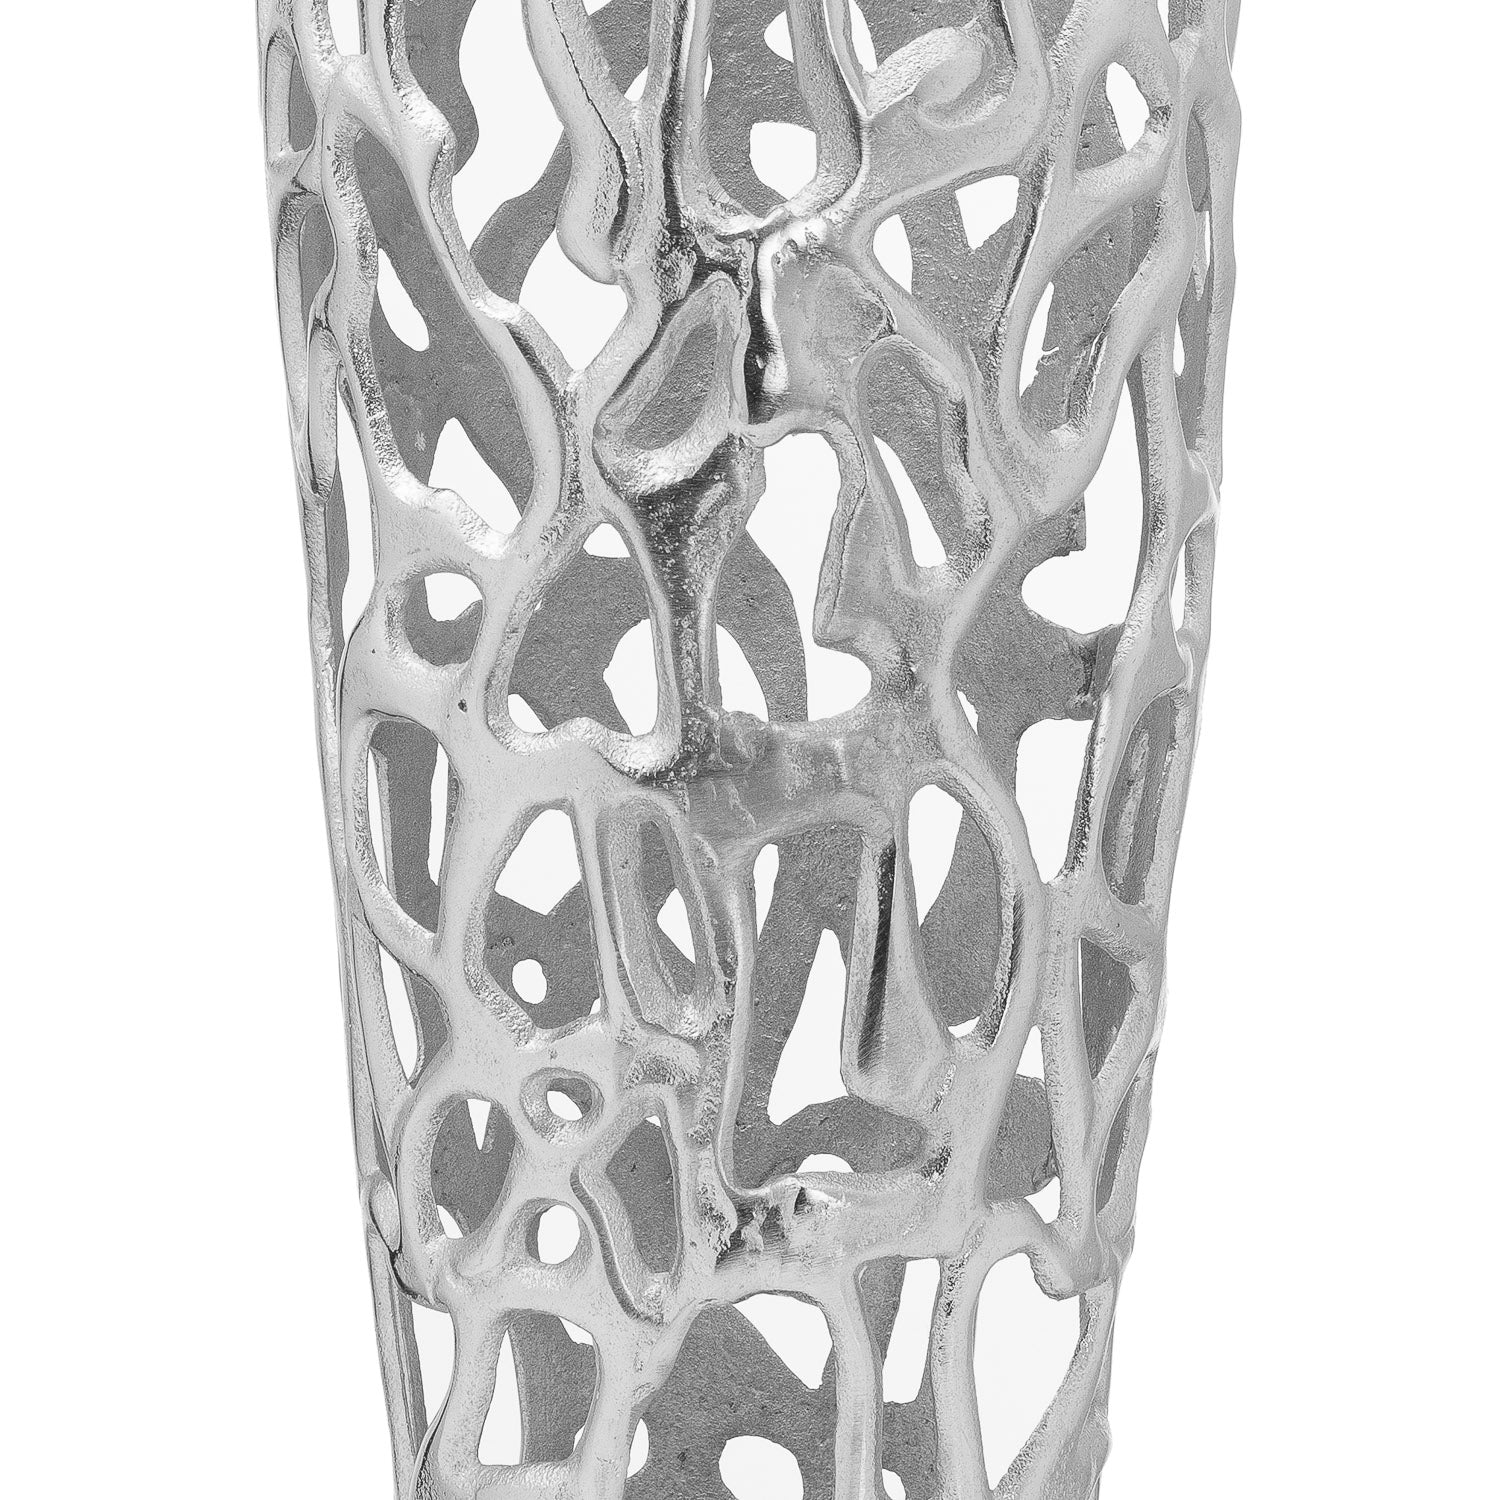 Ohlson Large Silver Coral Inspired Perforated Vase